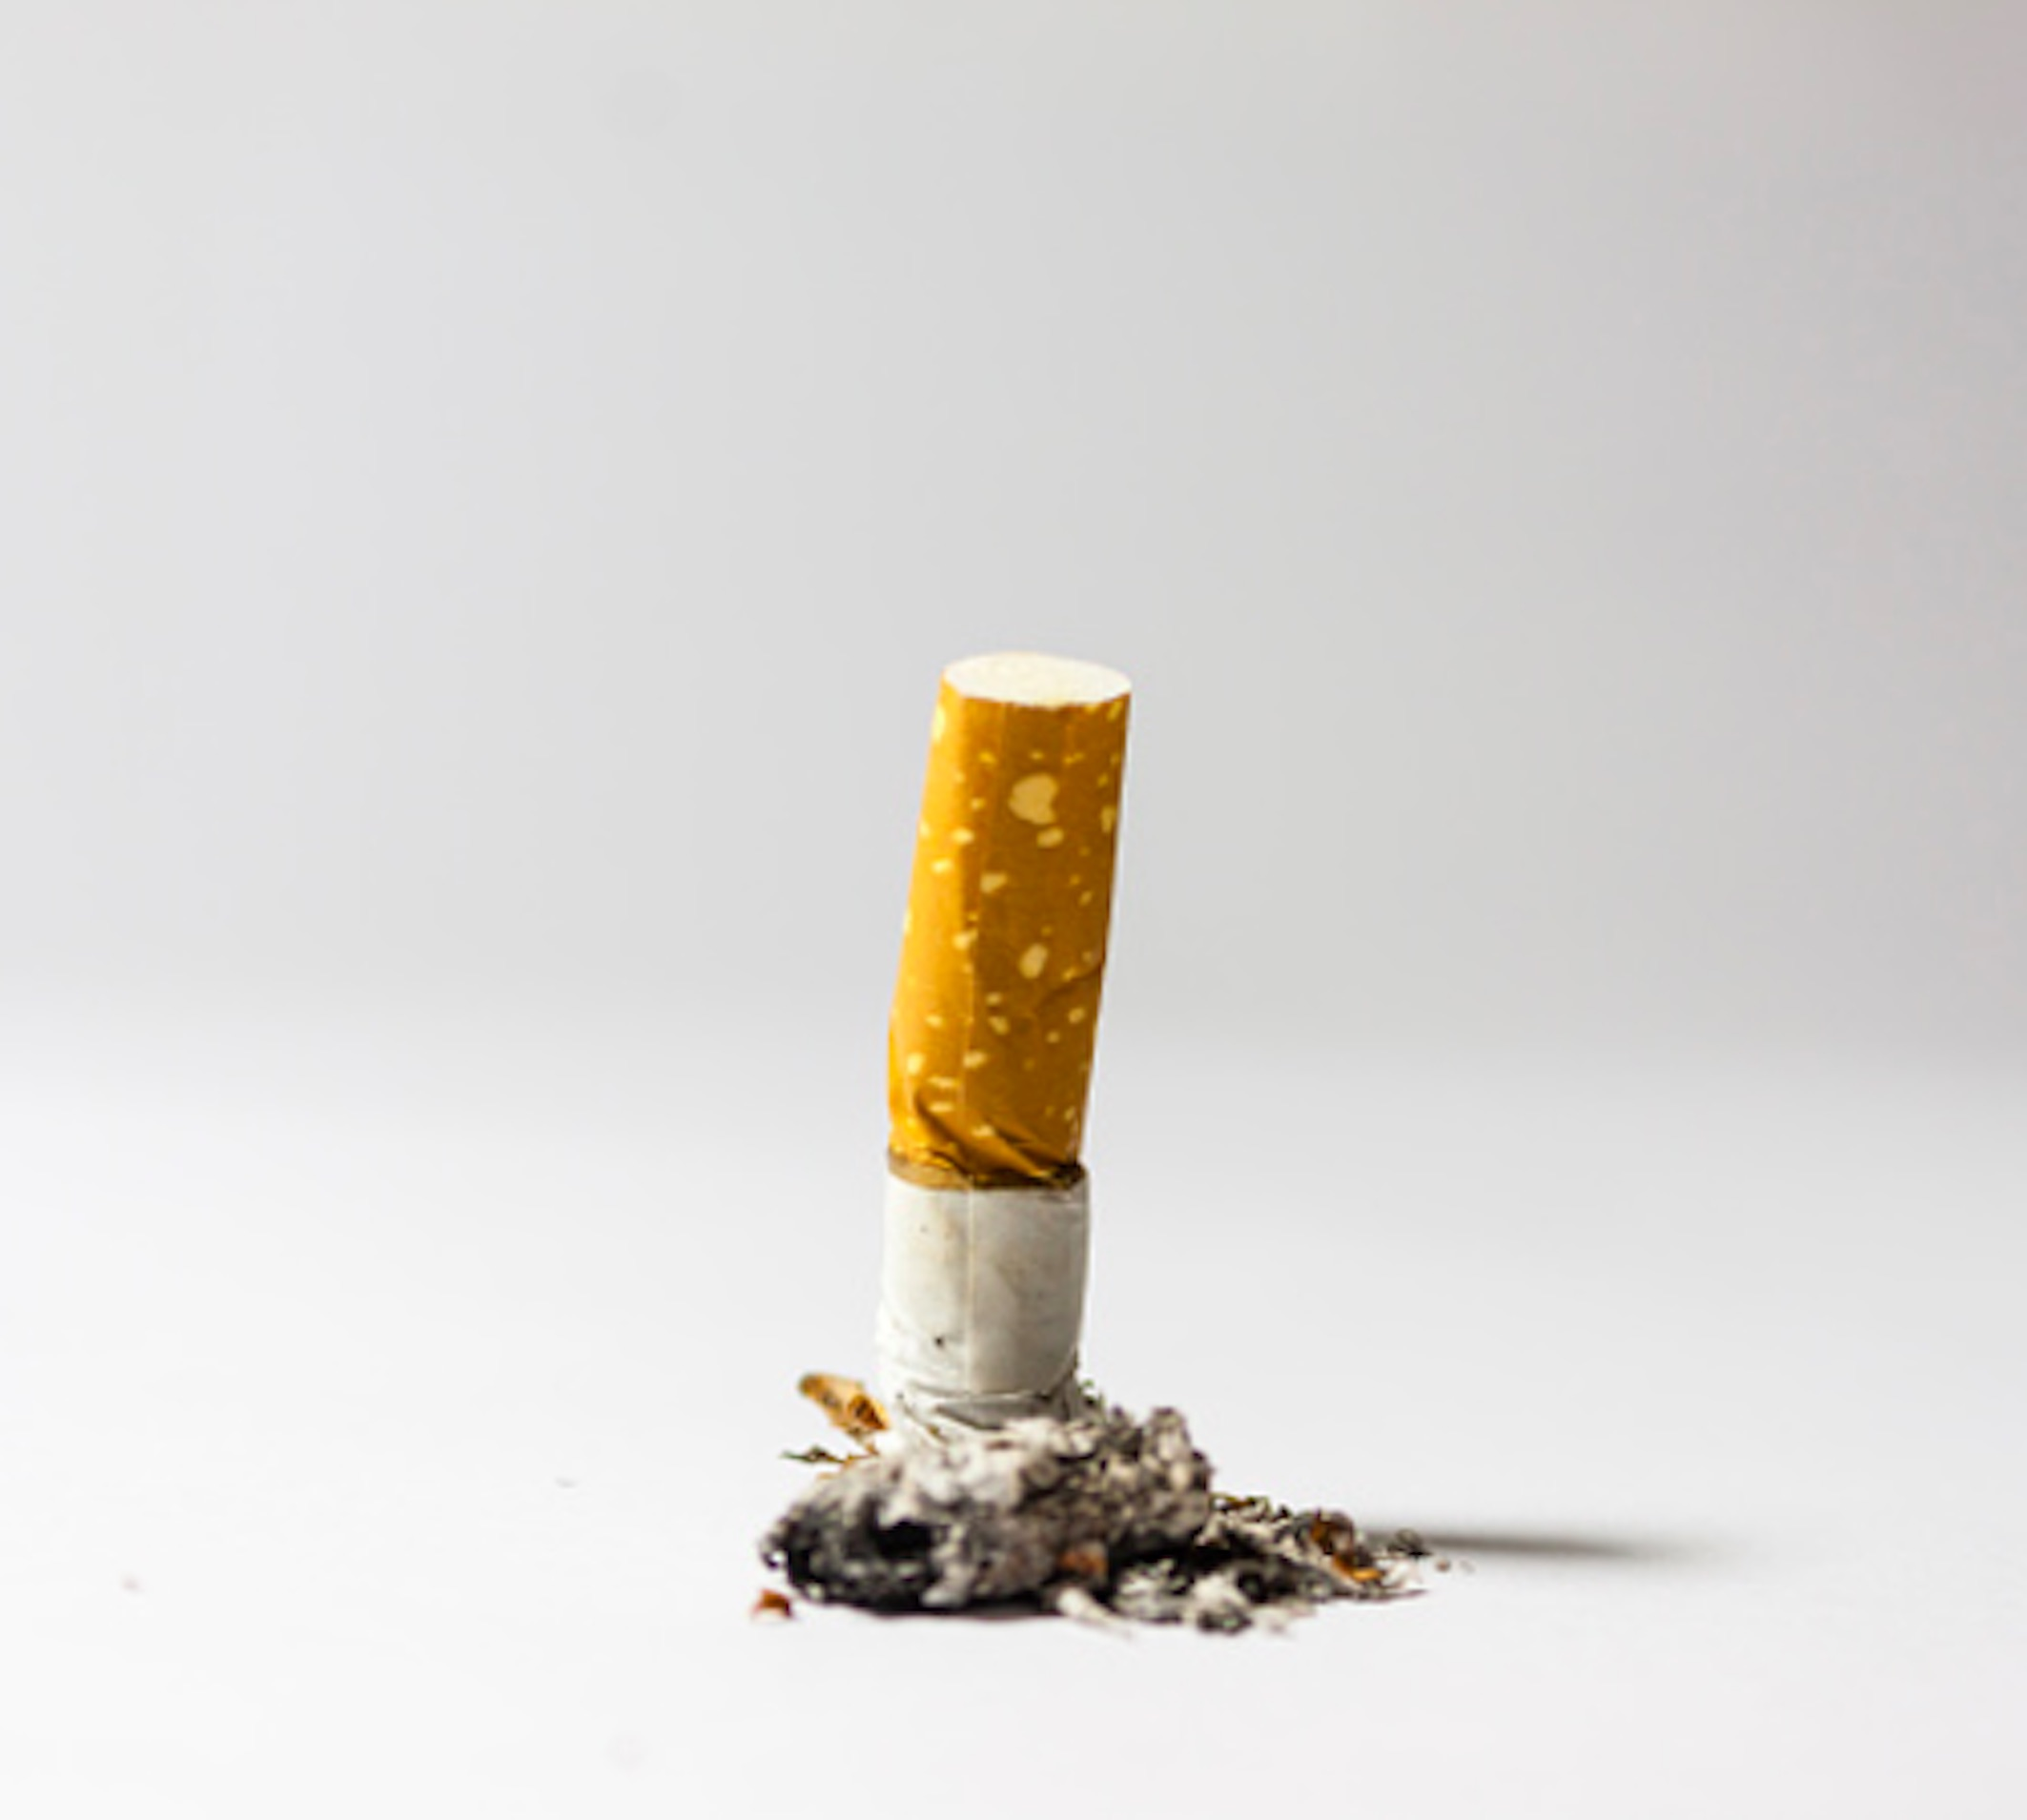 plan on smoking Uk to ban smoking in cars with kids (february 14, 2014) - a lesson plan with audio britain will soon ban smoking in cars with children britain's government wants to reduce the harm cigarette smoke does to children.